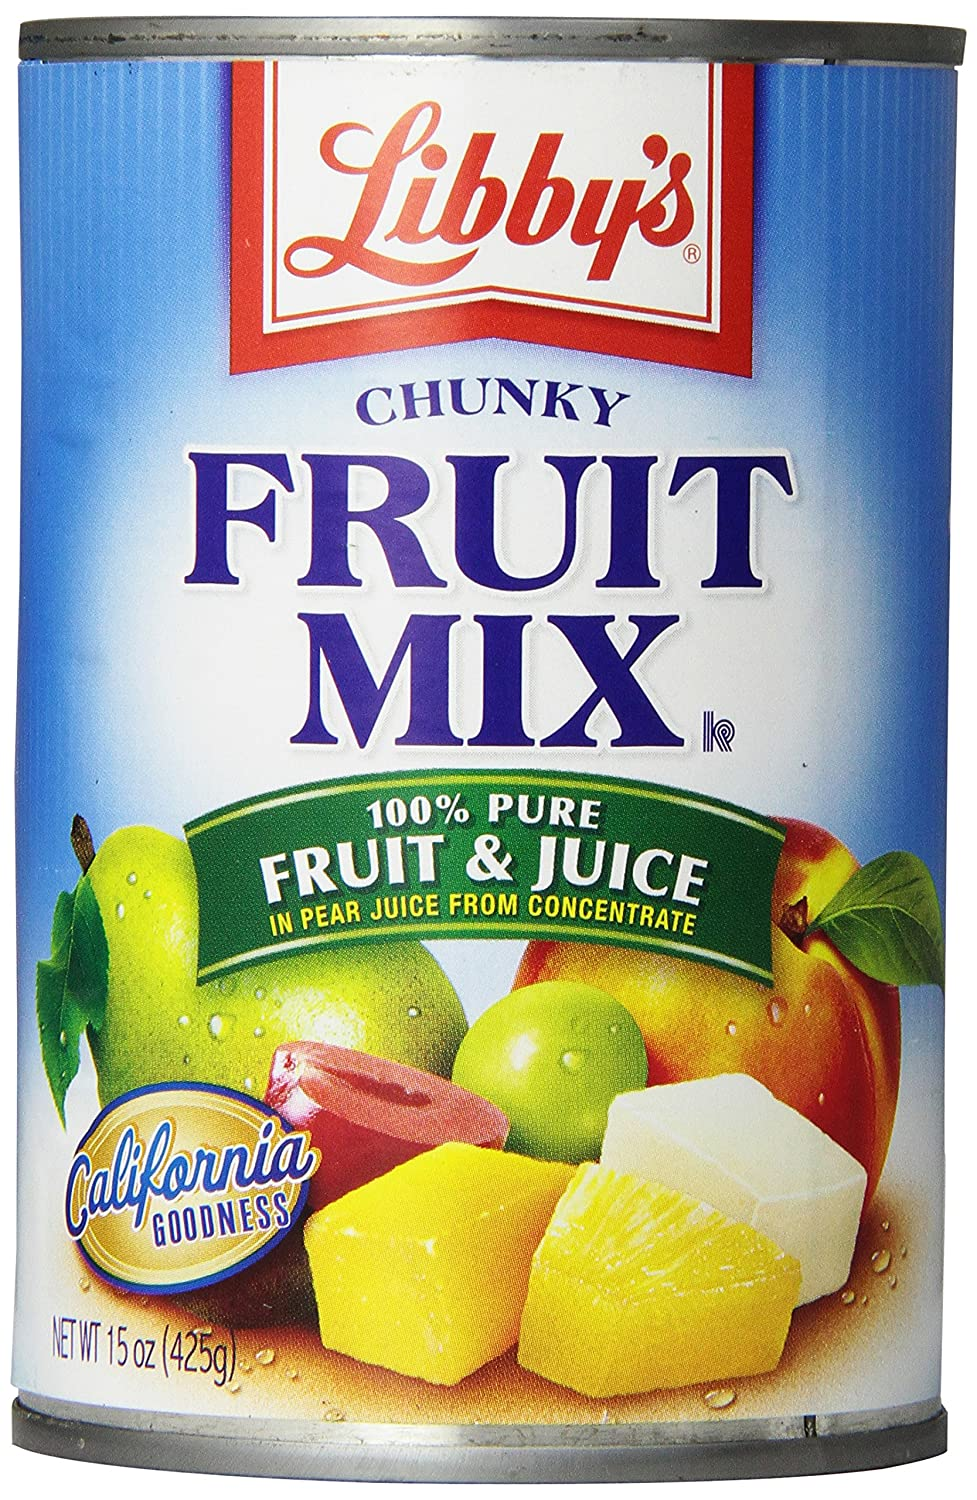 Cake Mix And Canned Fruit